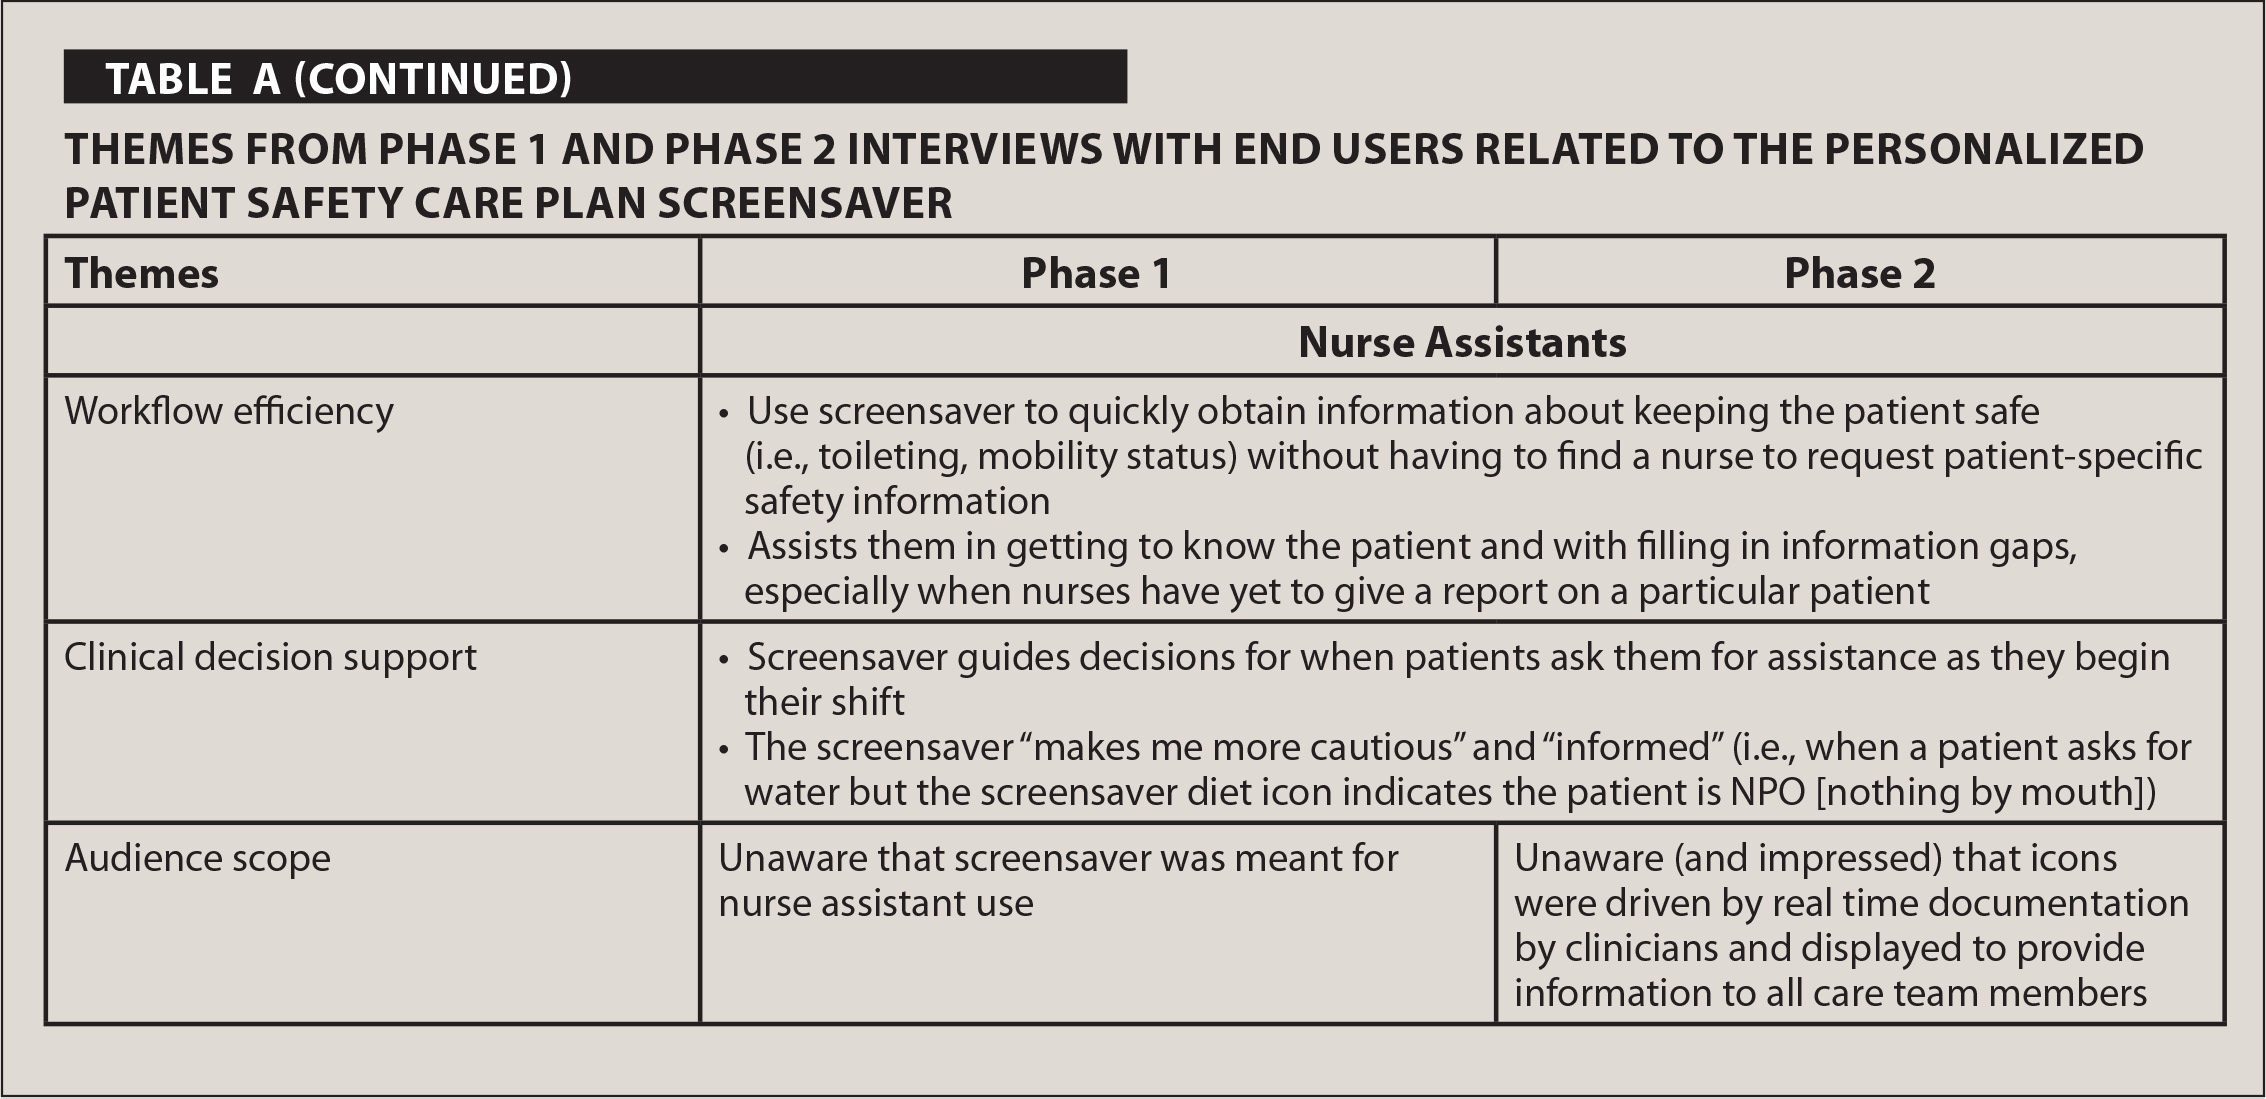 Themes from Phase 1 and Phase 2 Interviews with End Users Related to the Personalized Patient Safety Care Plan Screensaver